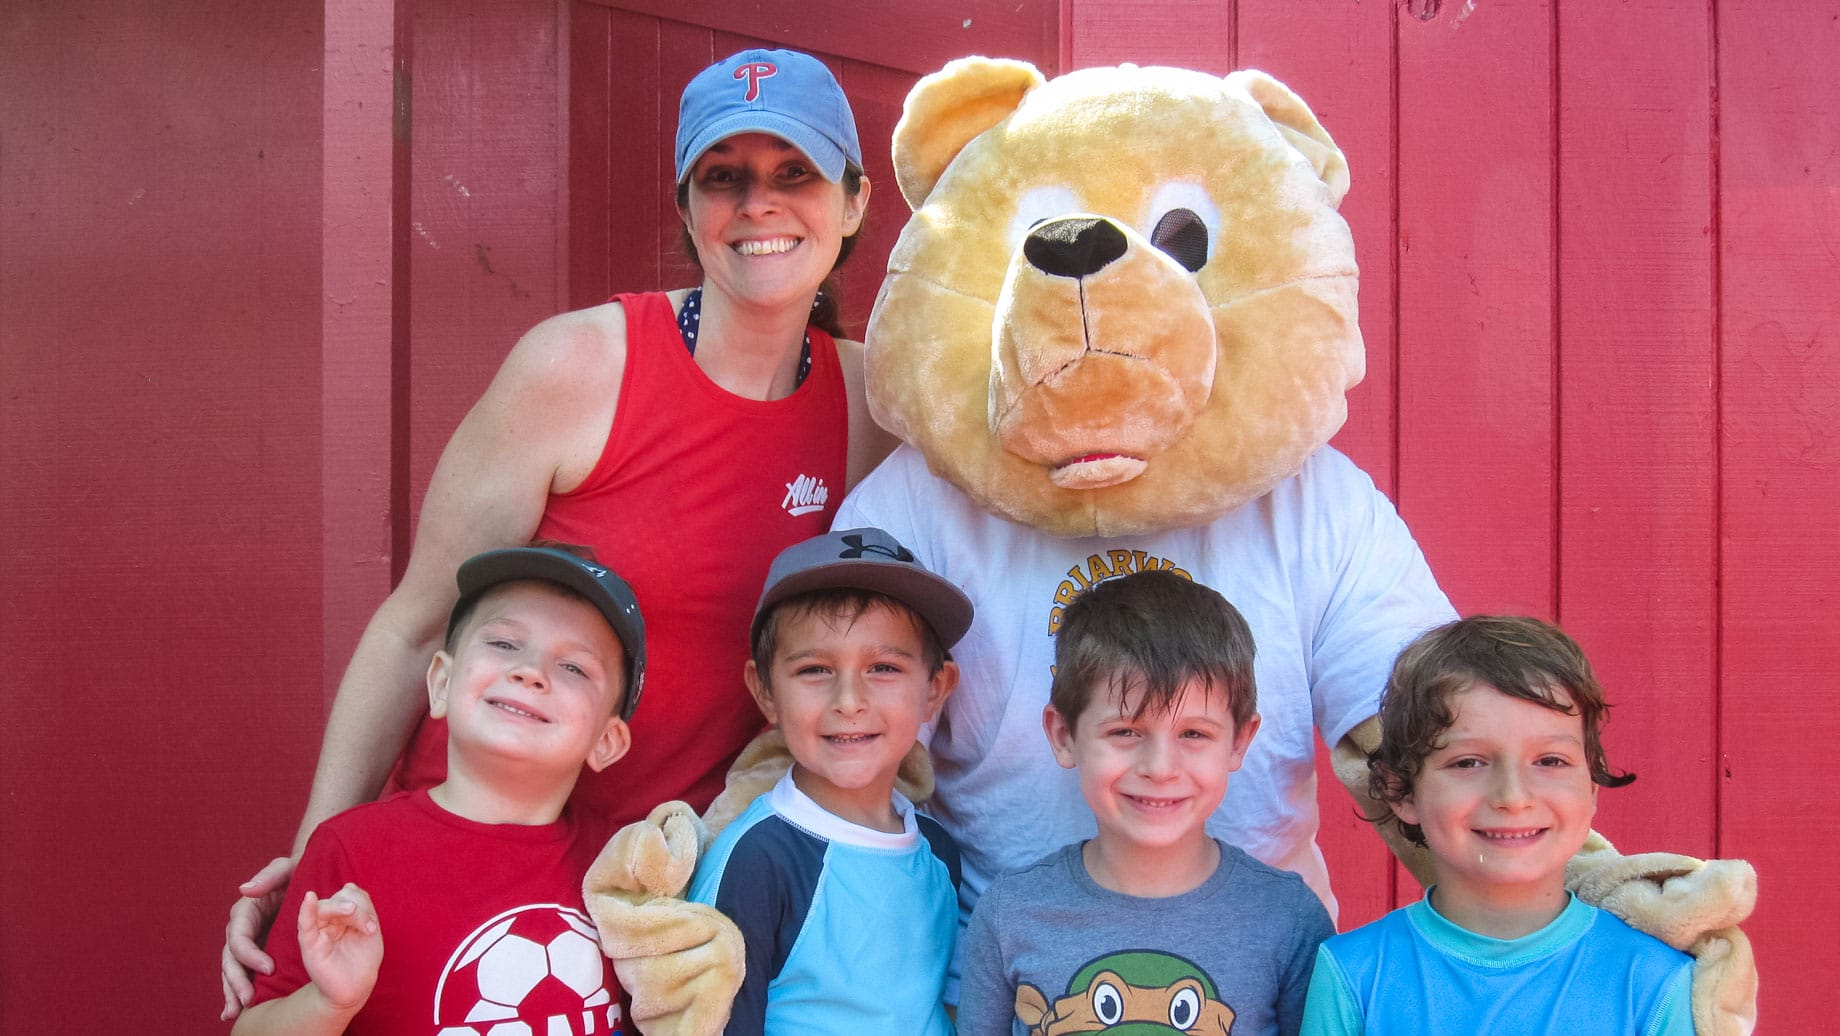 Staff, mascot, and campers smiling